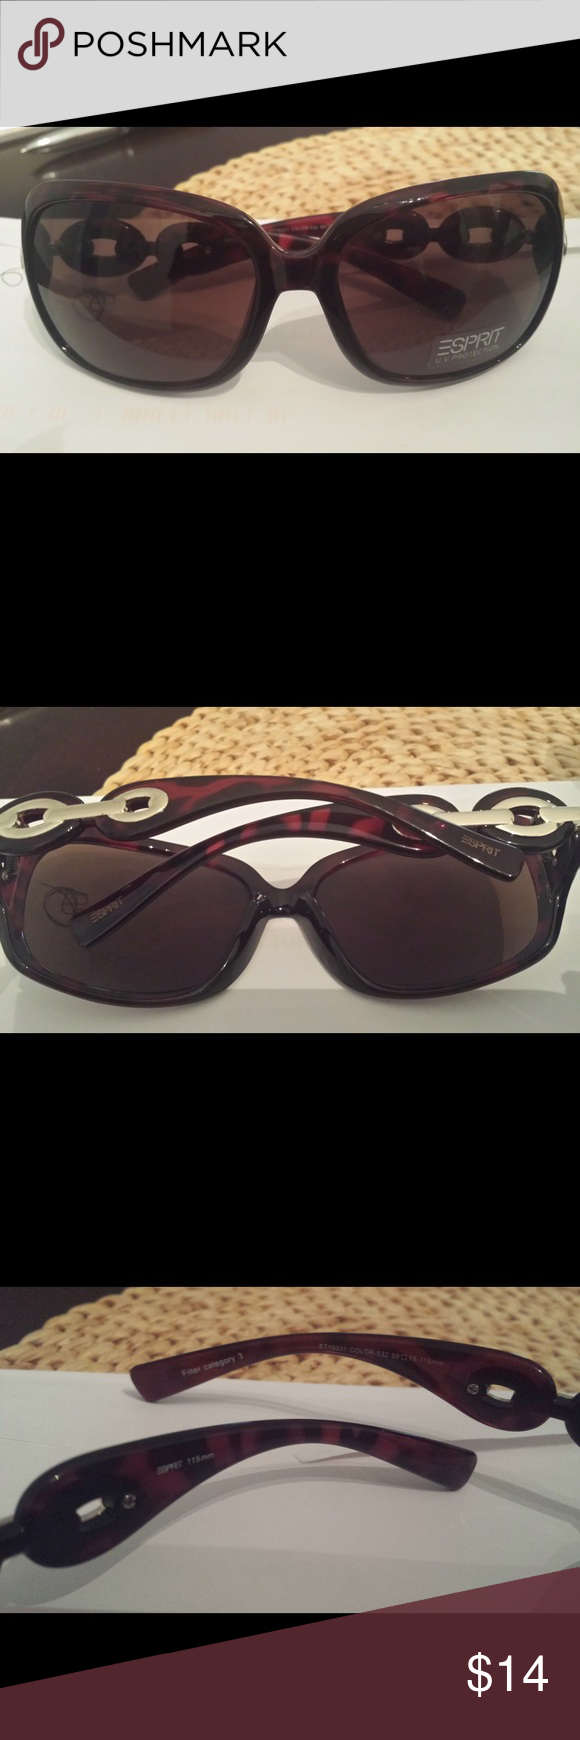 ESPRIT SUNGLASSES Women's Esprit sunglasses. Animal print with gold accents. Gold accent on one side has tiny scratches. Brand new never used. ESPRIT Accessories Sunglasses